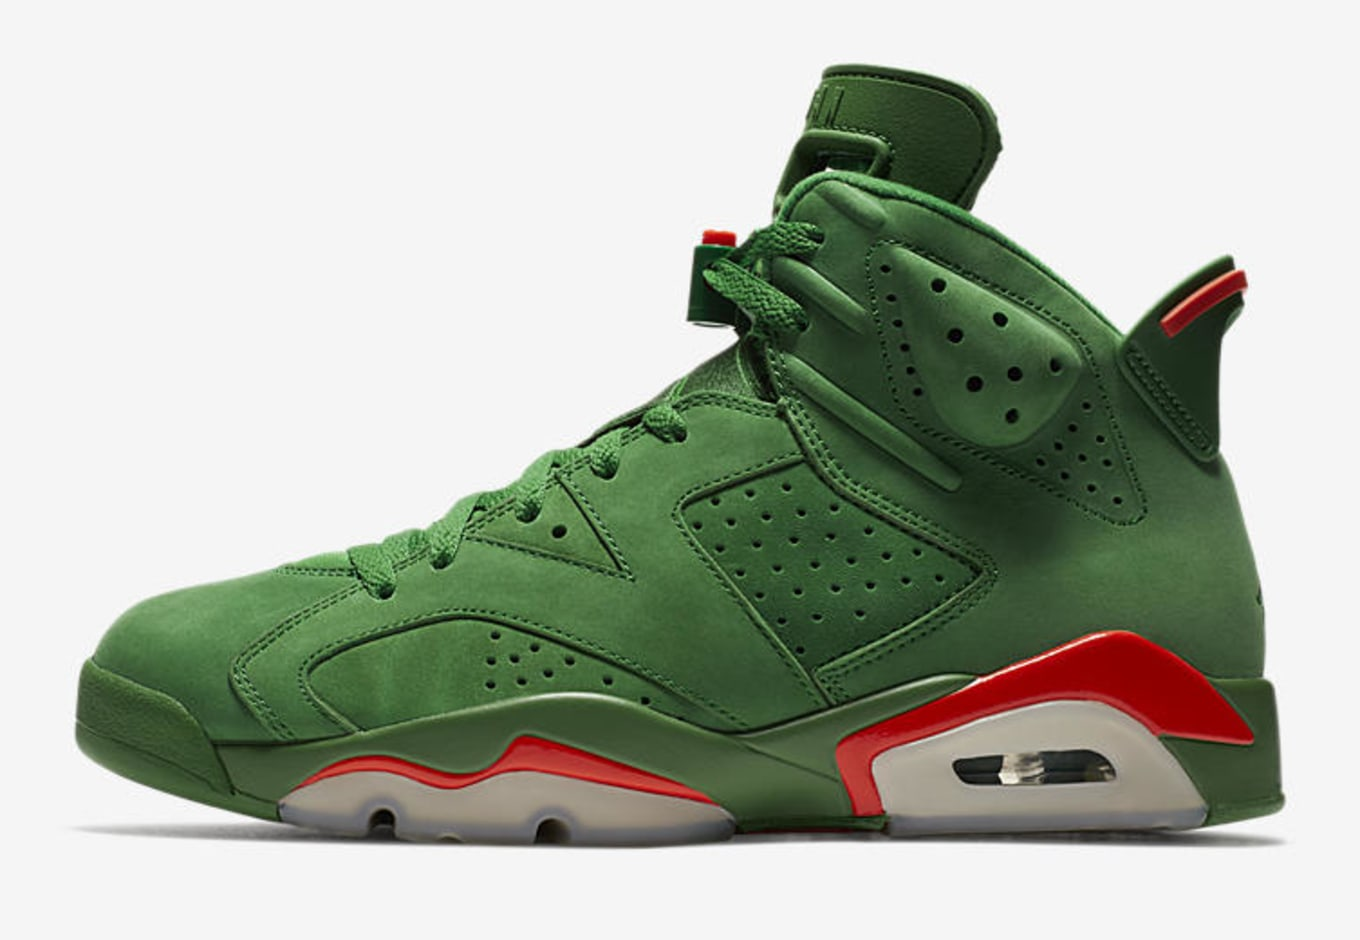 95ee086b624 Where to Buy Air Jordan 6 Gatorade Green | Sole Collector